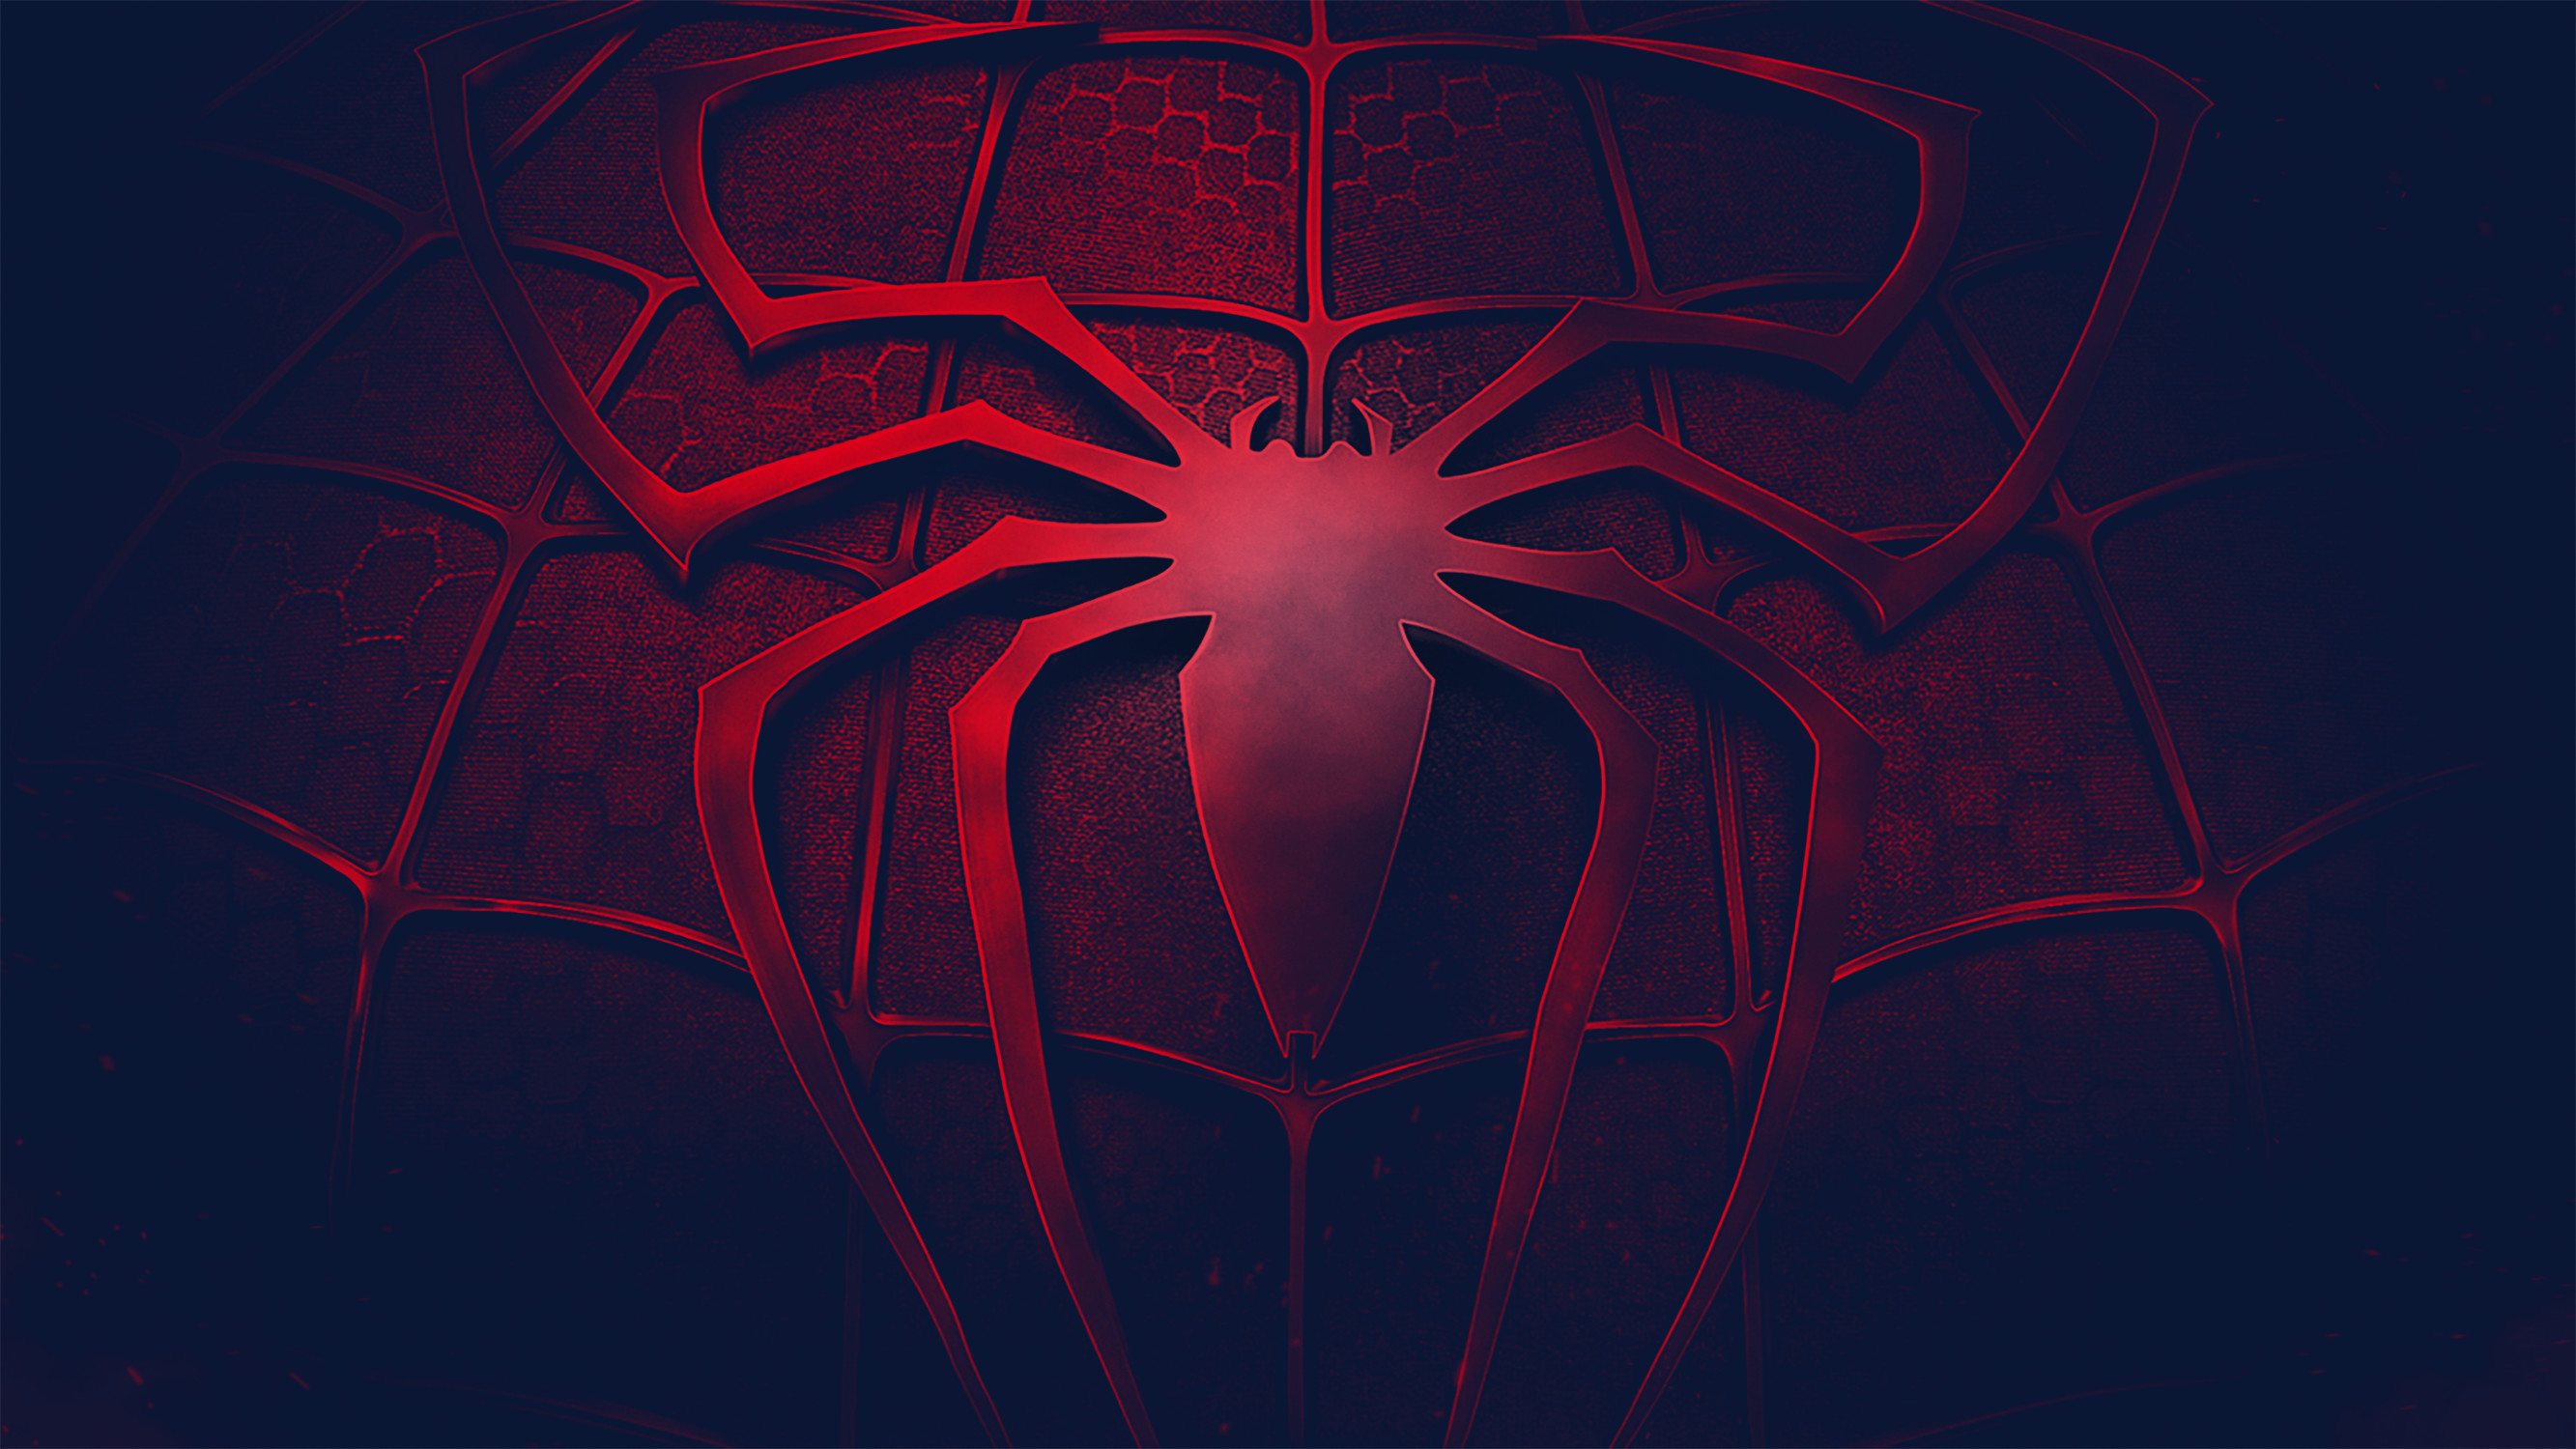 Spiderman 3 wallpaper wallpapertag - Spider hd images download ...